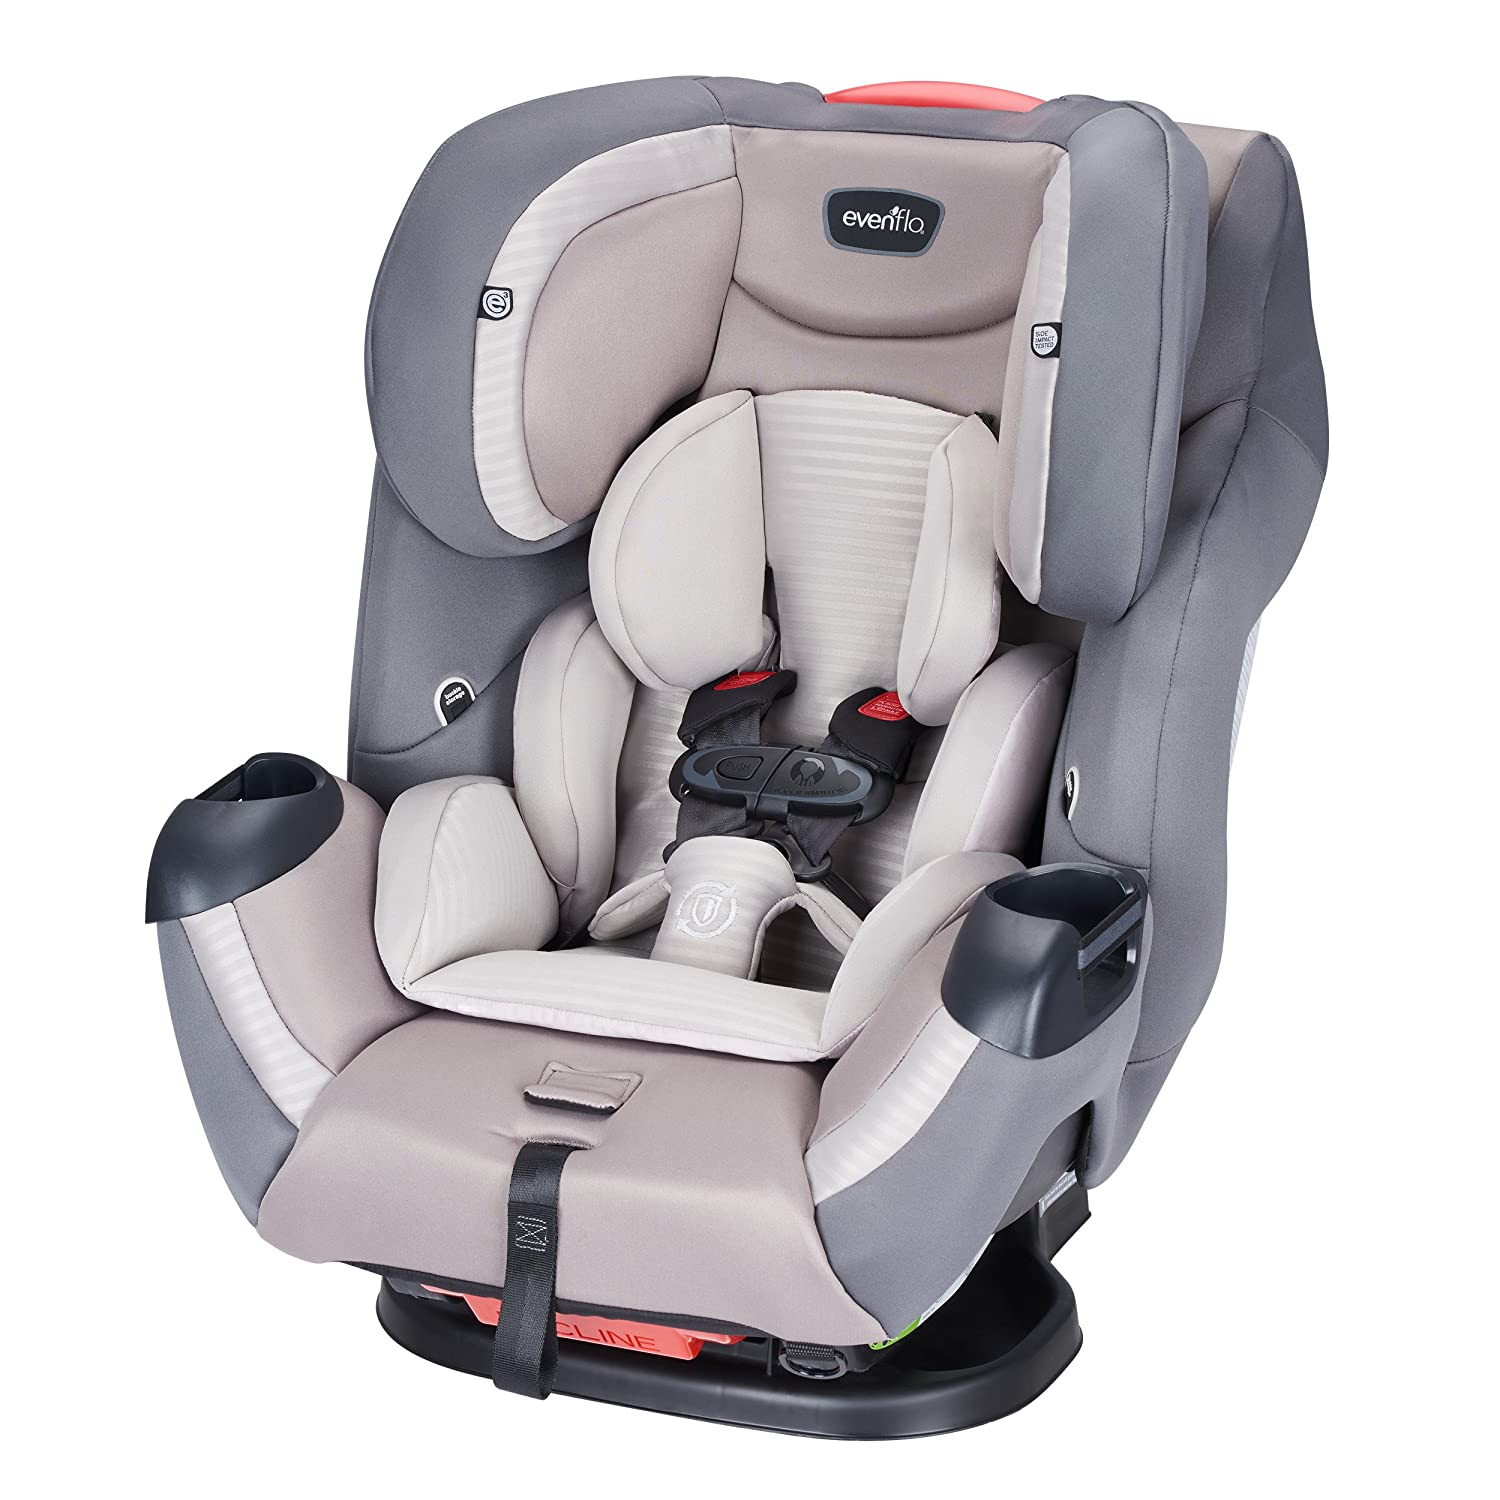 Evenflo Platinum Symphony LX All-In-One Car Seat, Montgomery Evenflo -- Dropship 34512247